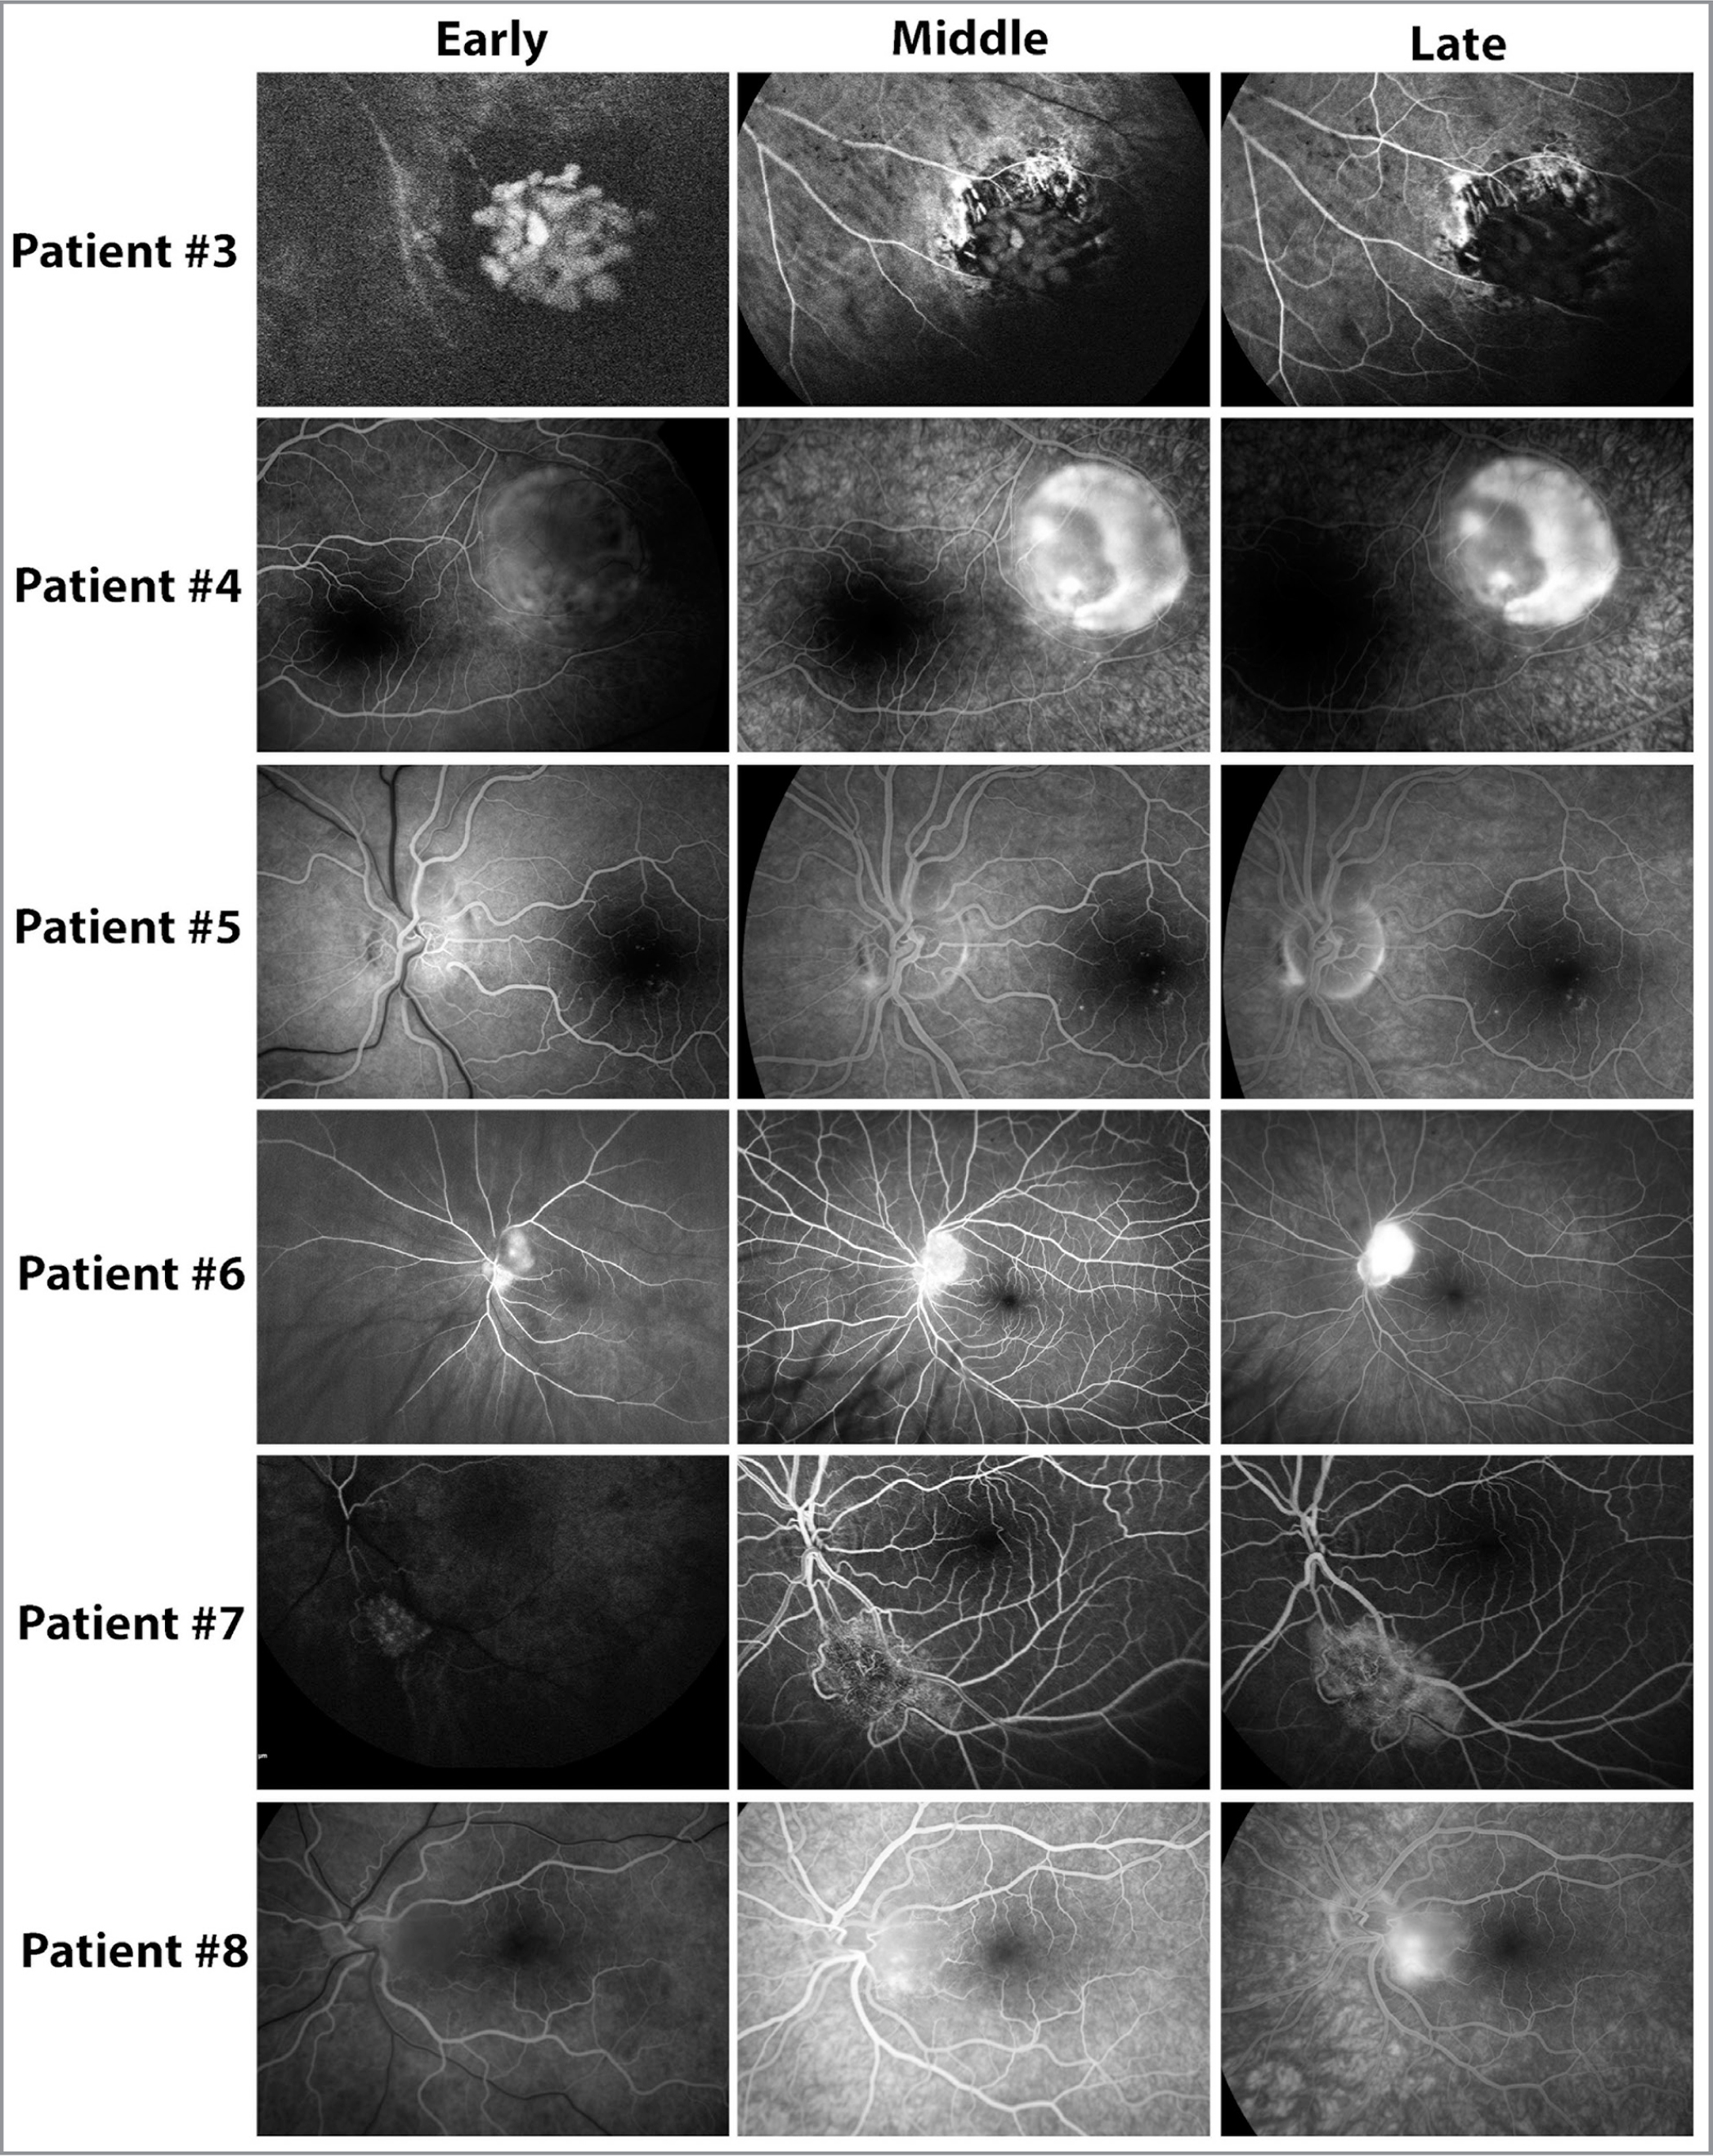 Fundus fluorescein angiography of six patients upon presentation. Images are numbered corresponding to the patient labels consistent in other Tables and Figures. Two patients did not undergo fluorescein angiogram (Patient No. 1 and No. 2).